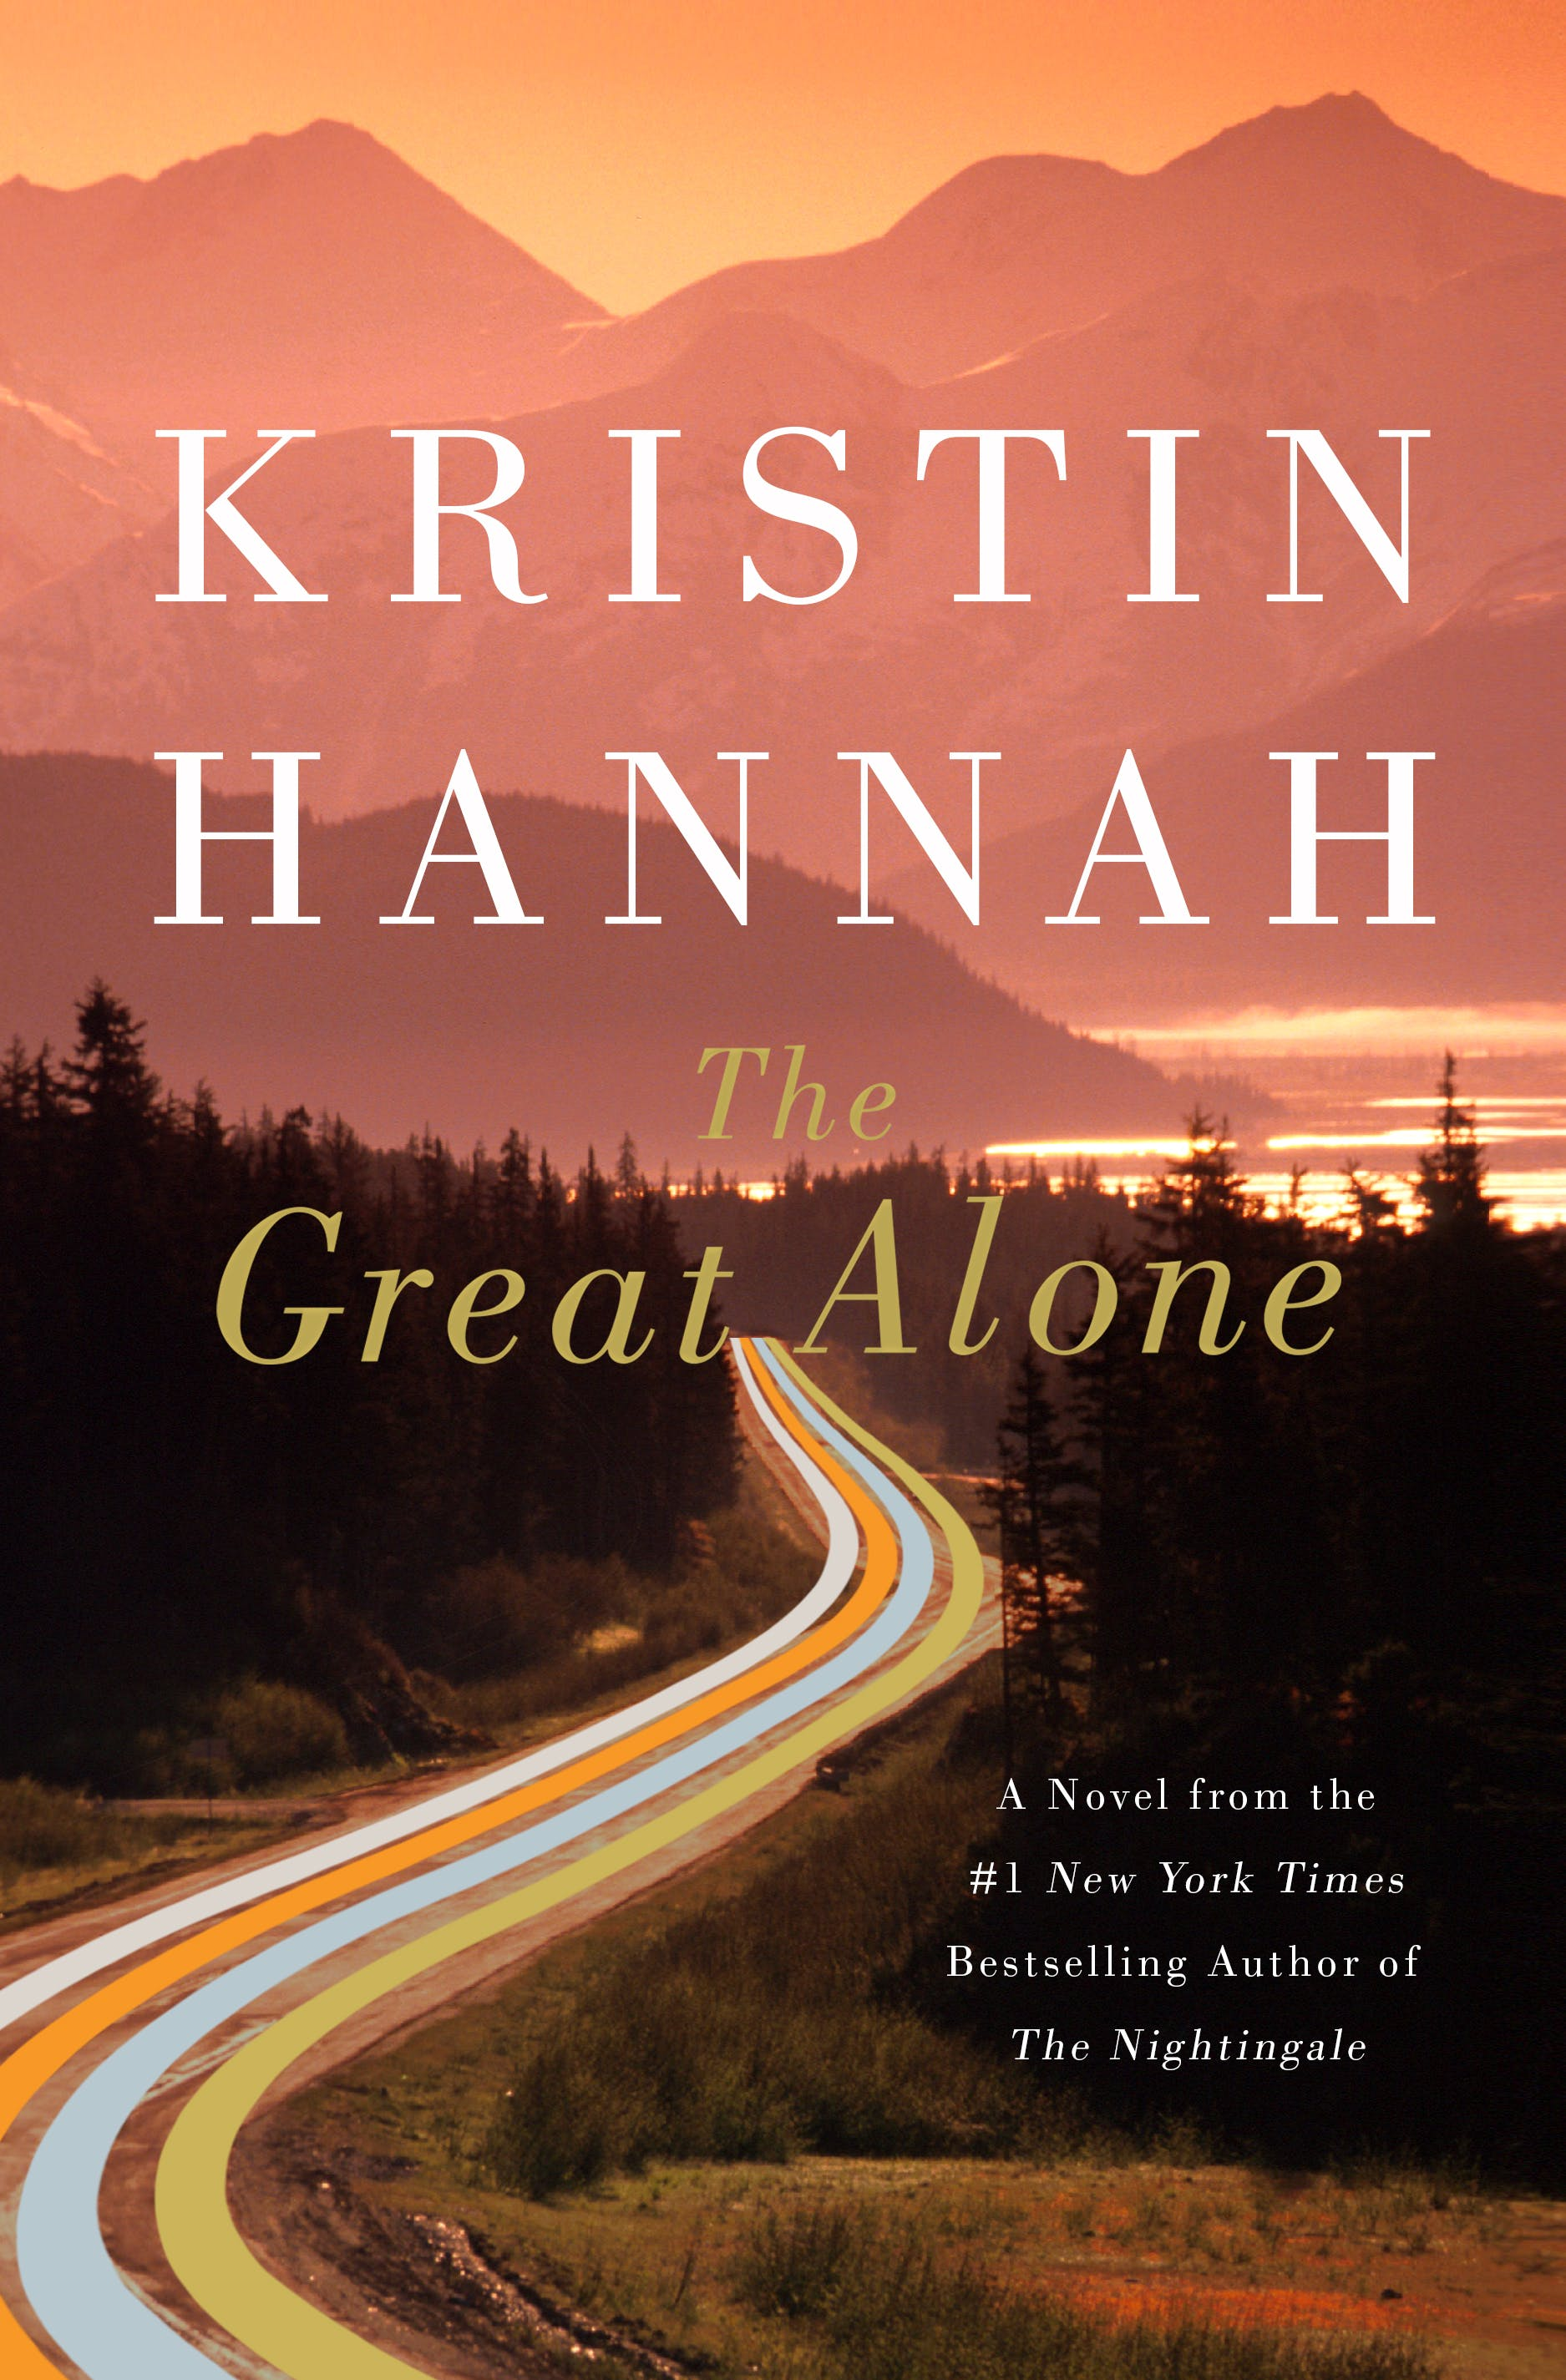 the great alone by kristin hannah.jpg